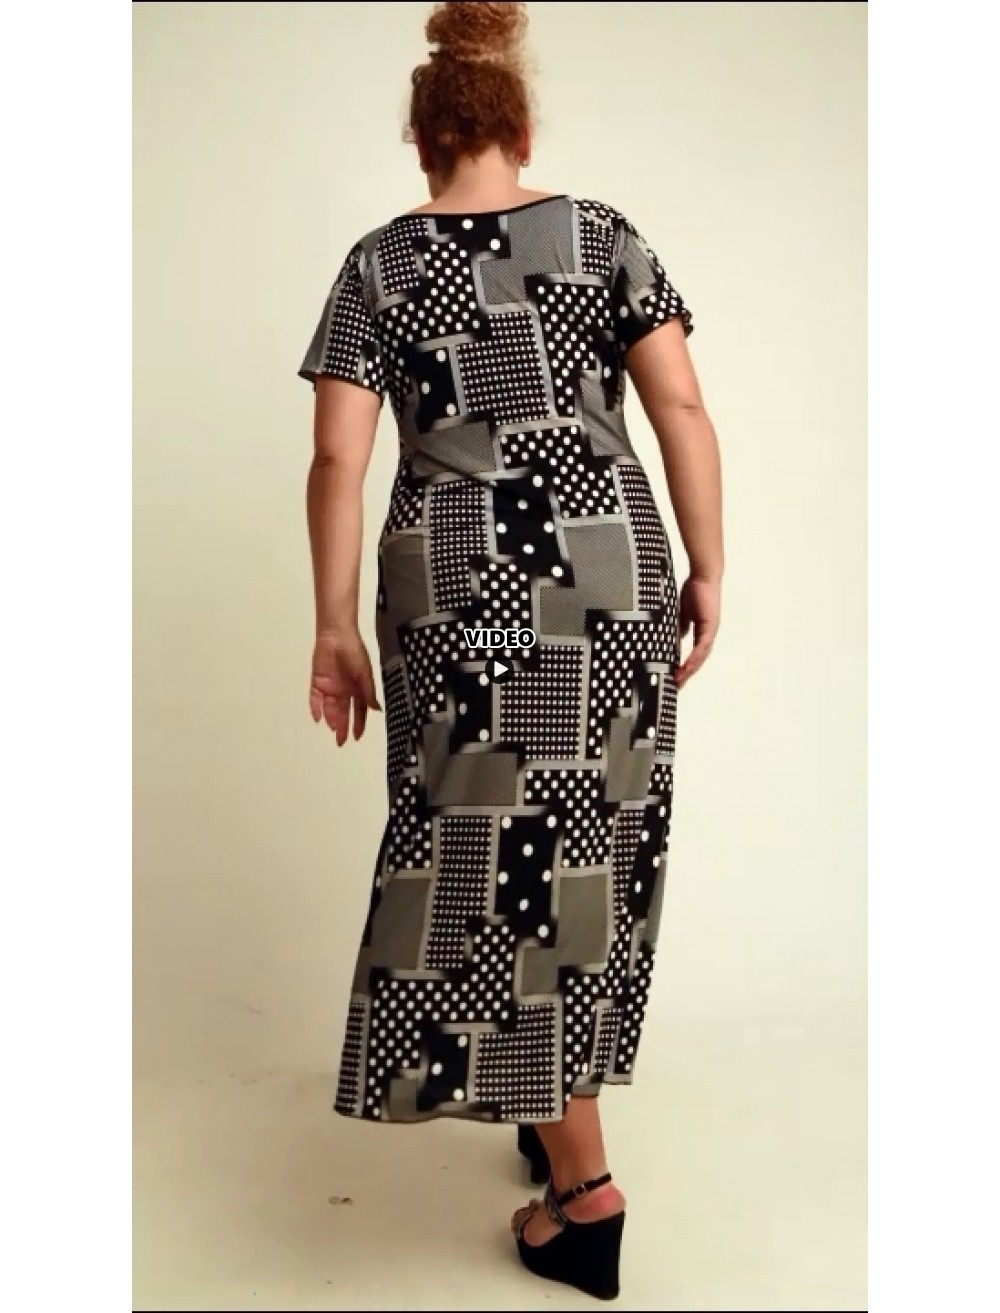 A20-4623FK Dress with pattern